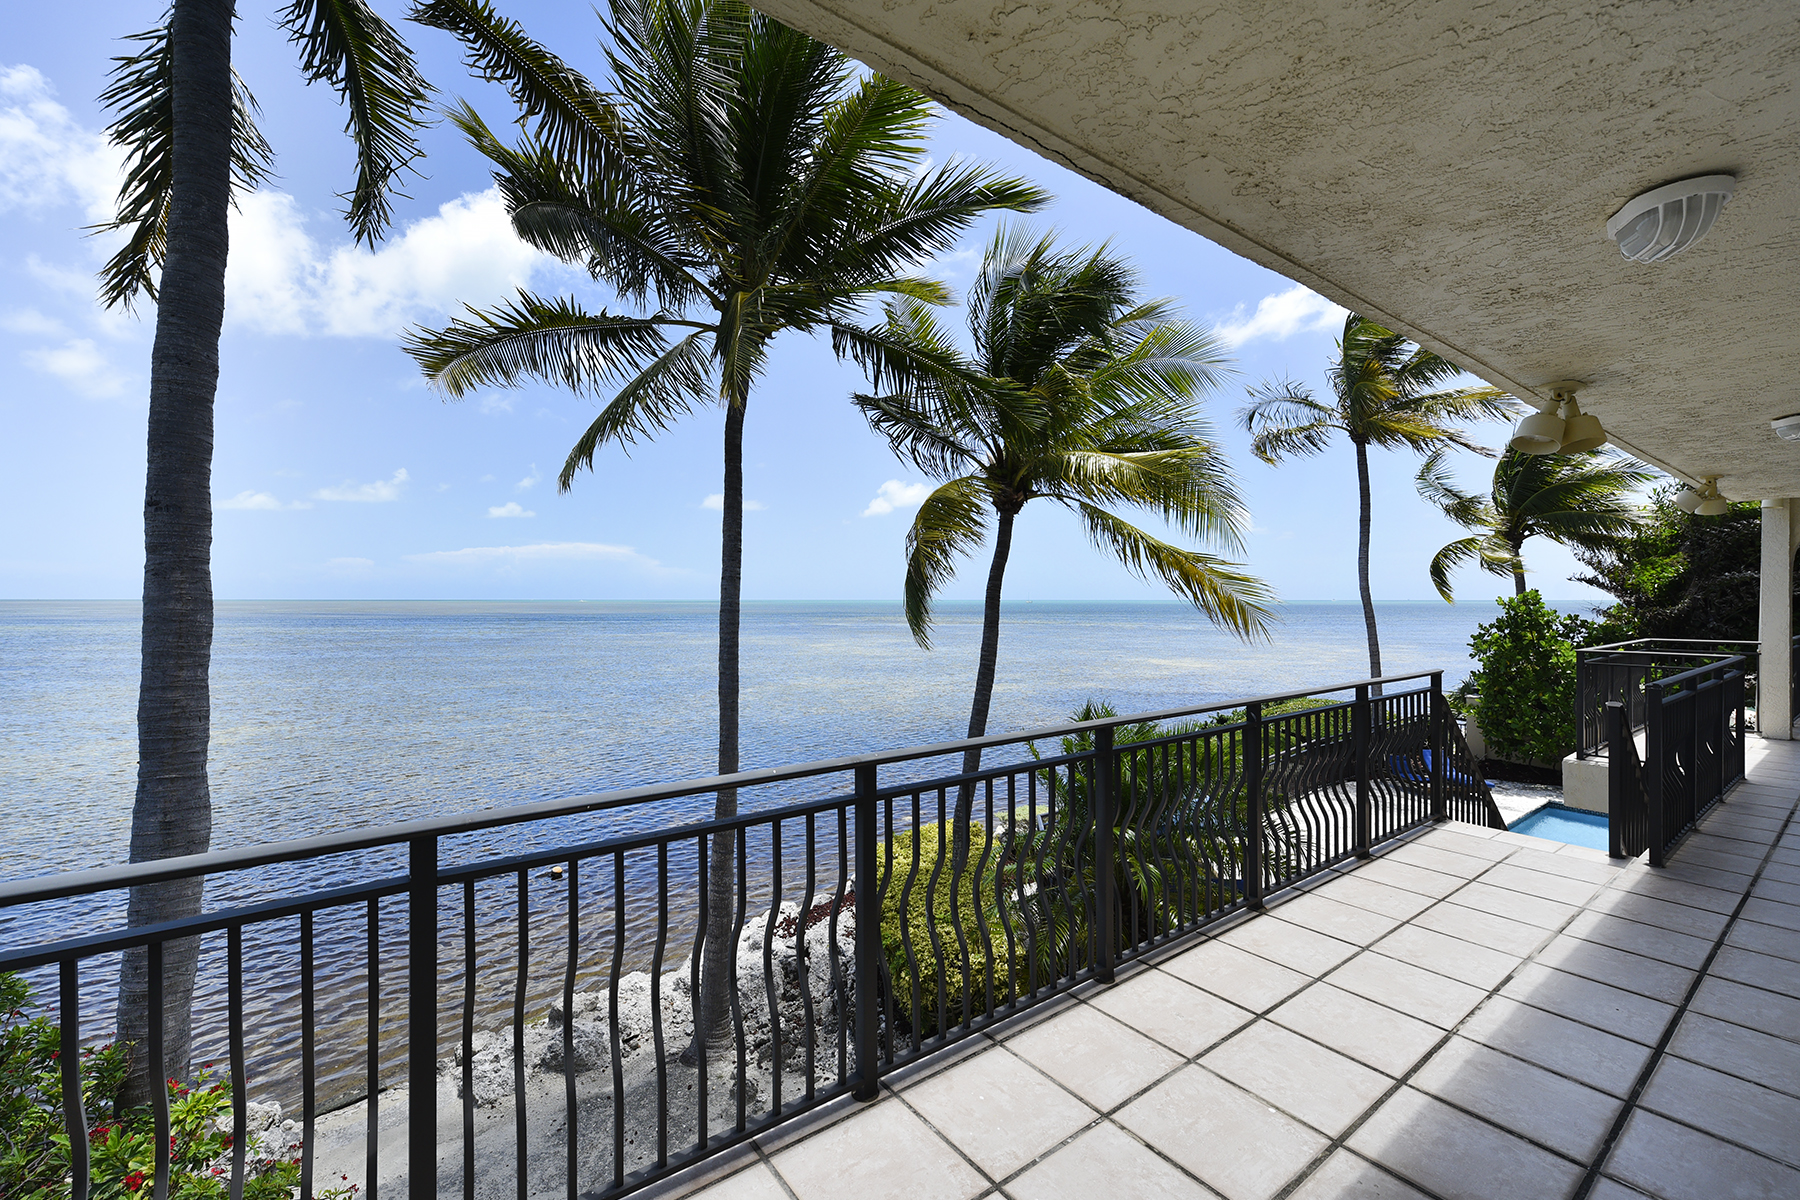 Additional photo for property listing at Gated & Private Oceanfront Location 544 Ocean Cay Key Largo, Florida 33037 Verenigde Staten